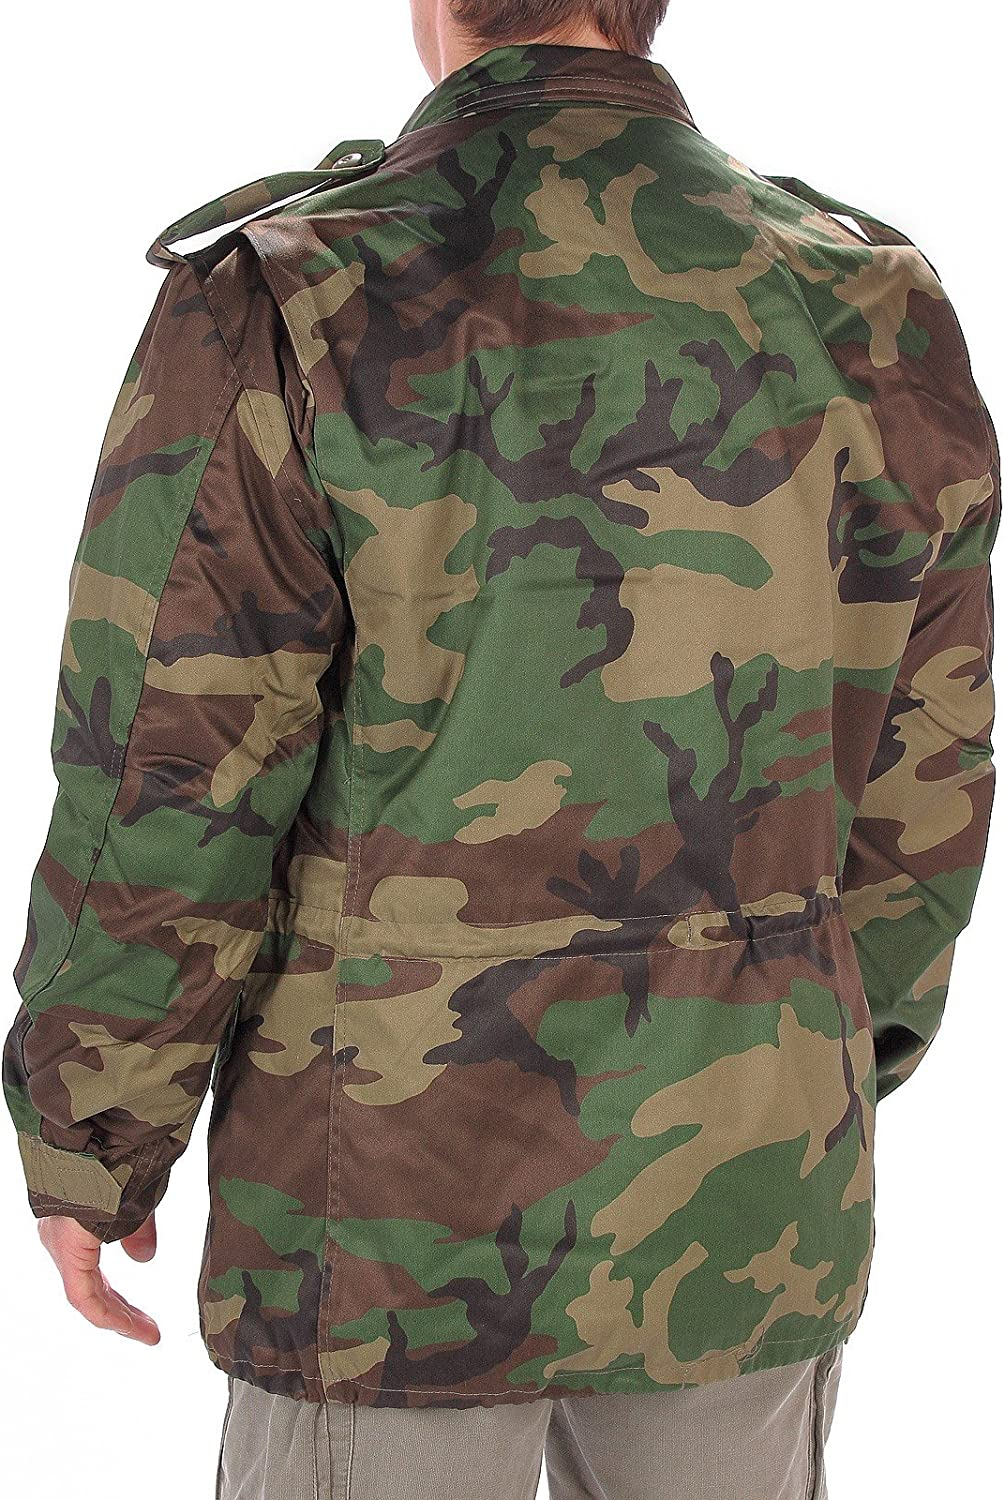 Mil-Tec US Army M65 FIELD JACKET Uomo con Thermo Liner Woodland